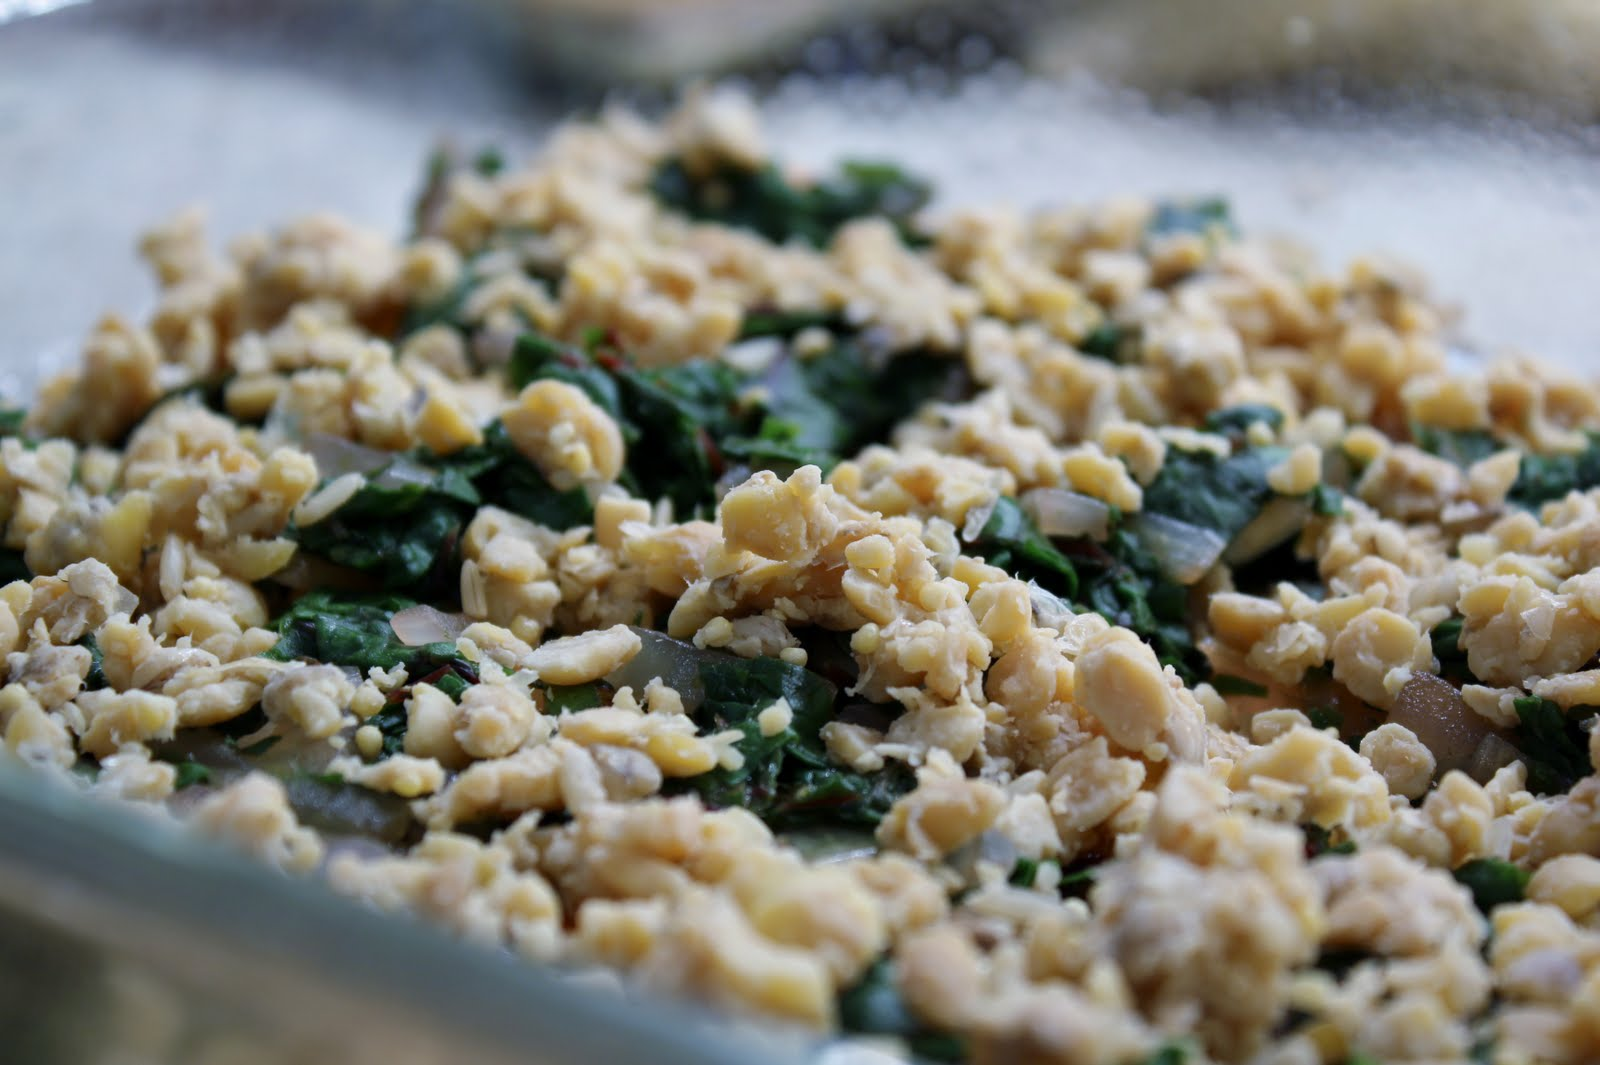 Super Immunity Sneak Preview #2: Swiss Chard and Sweet ...